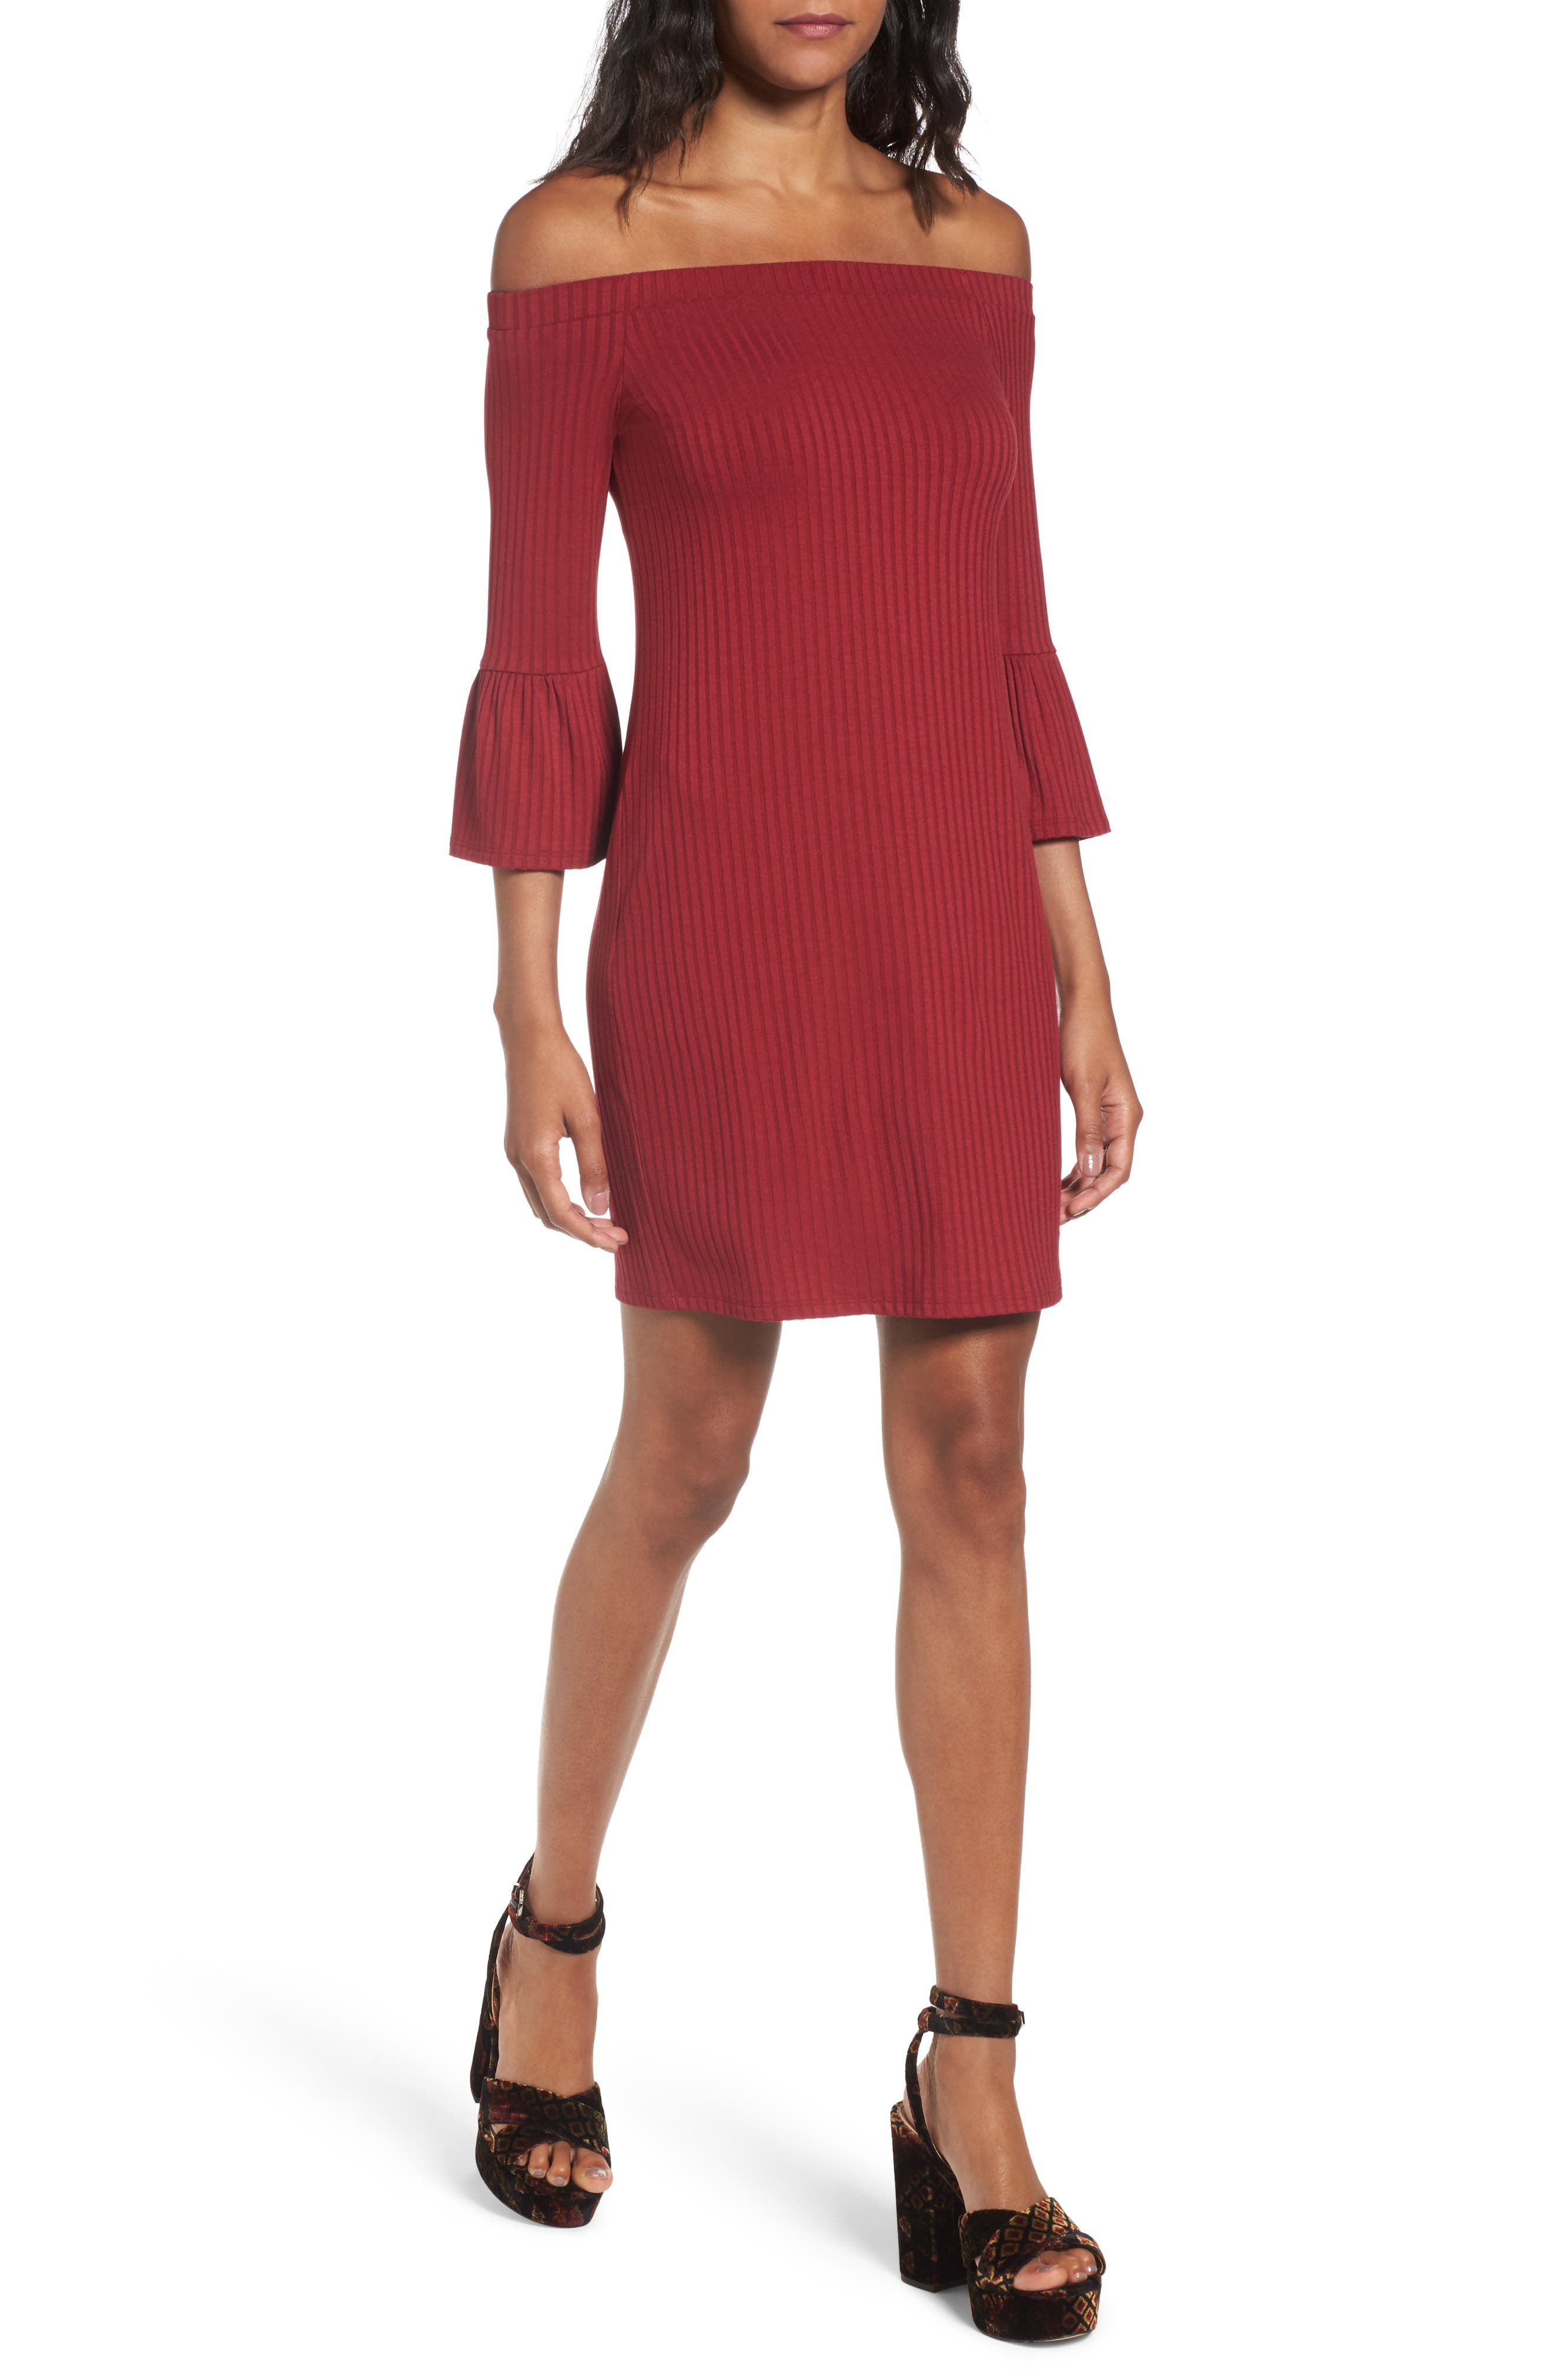 Main Image - One Clothing Off the Shoulder Rib Knit Dress